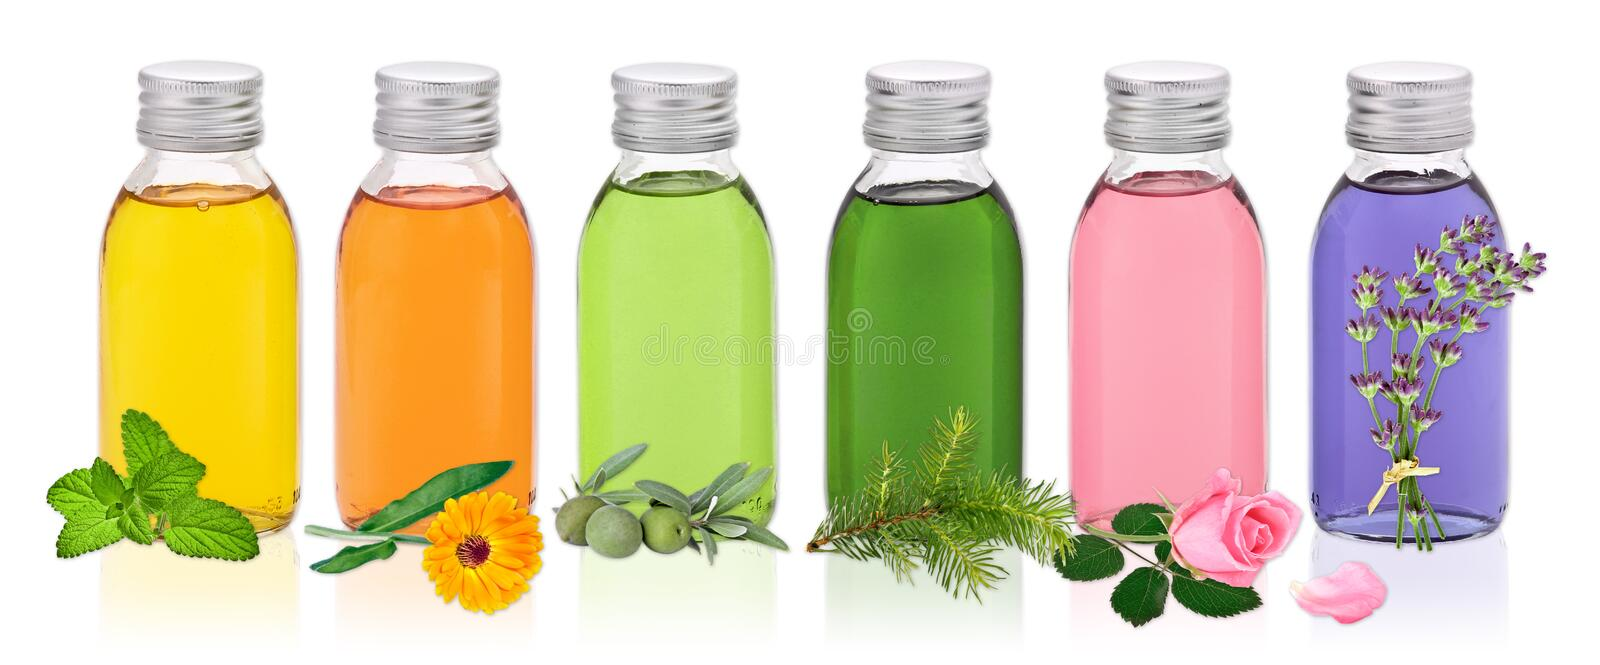 Different oils for wellness royalty free stock photos